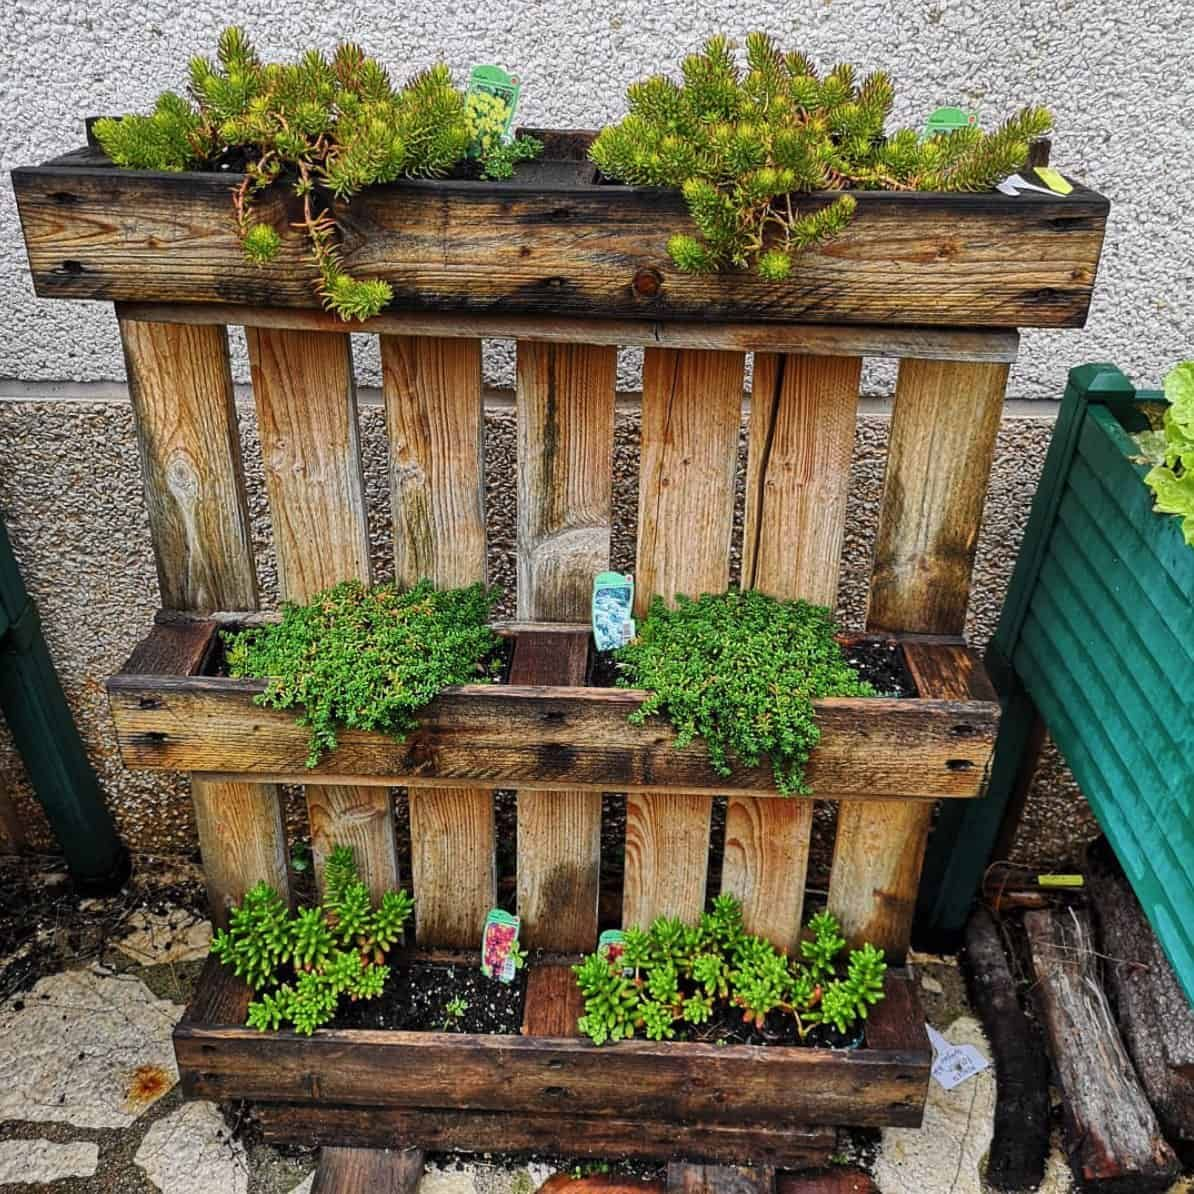 21 Spectacular Recycled Wood Pallet Garden Ideas To DIY in